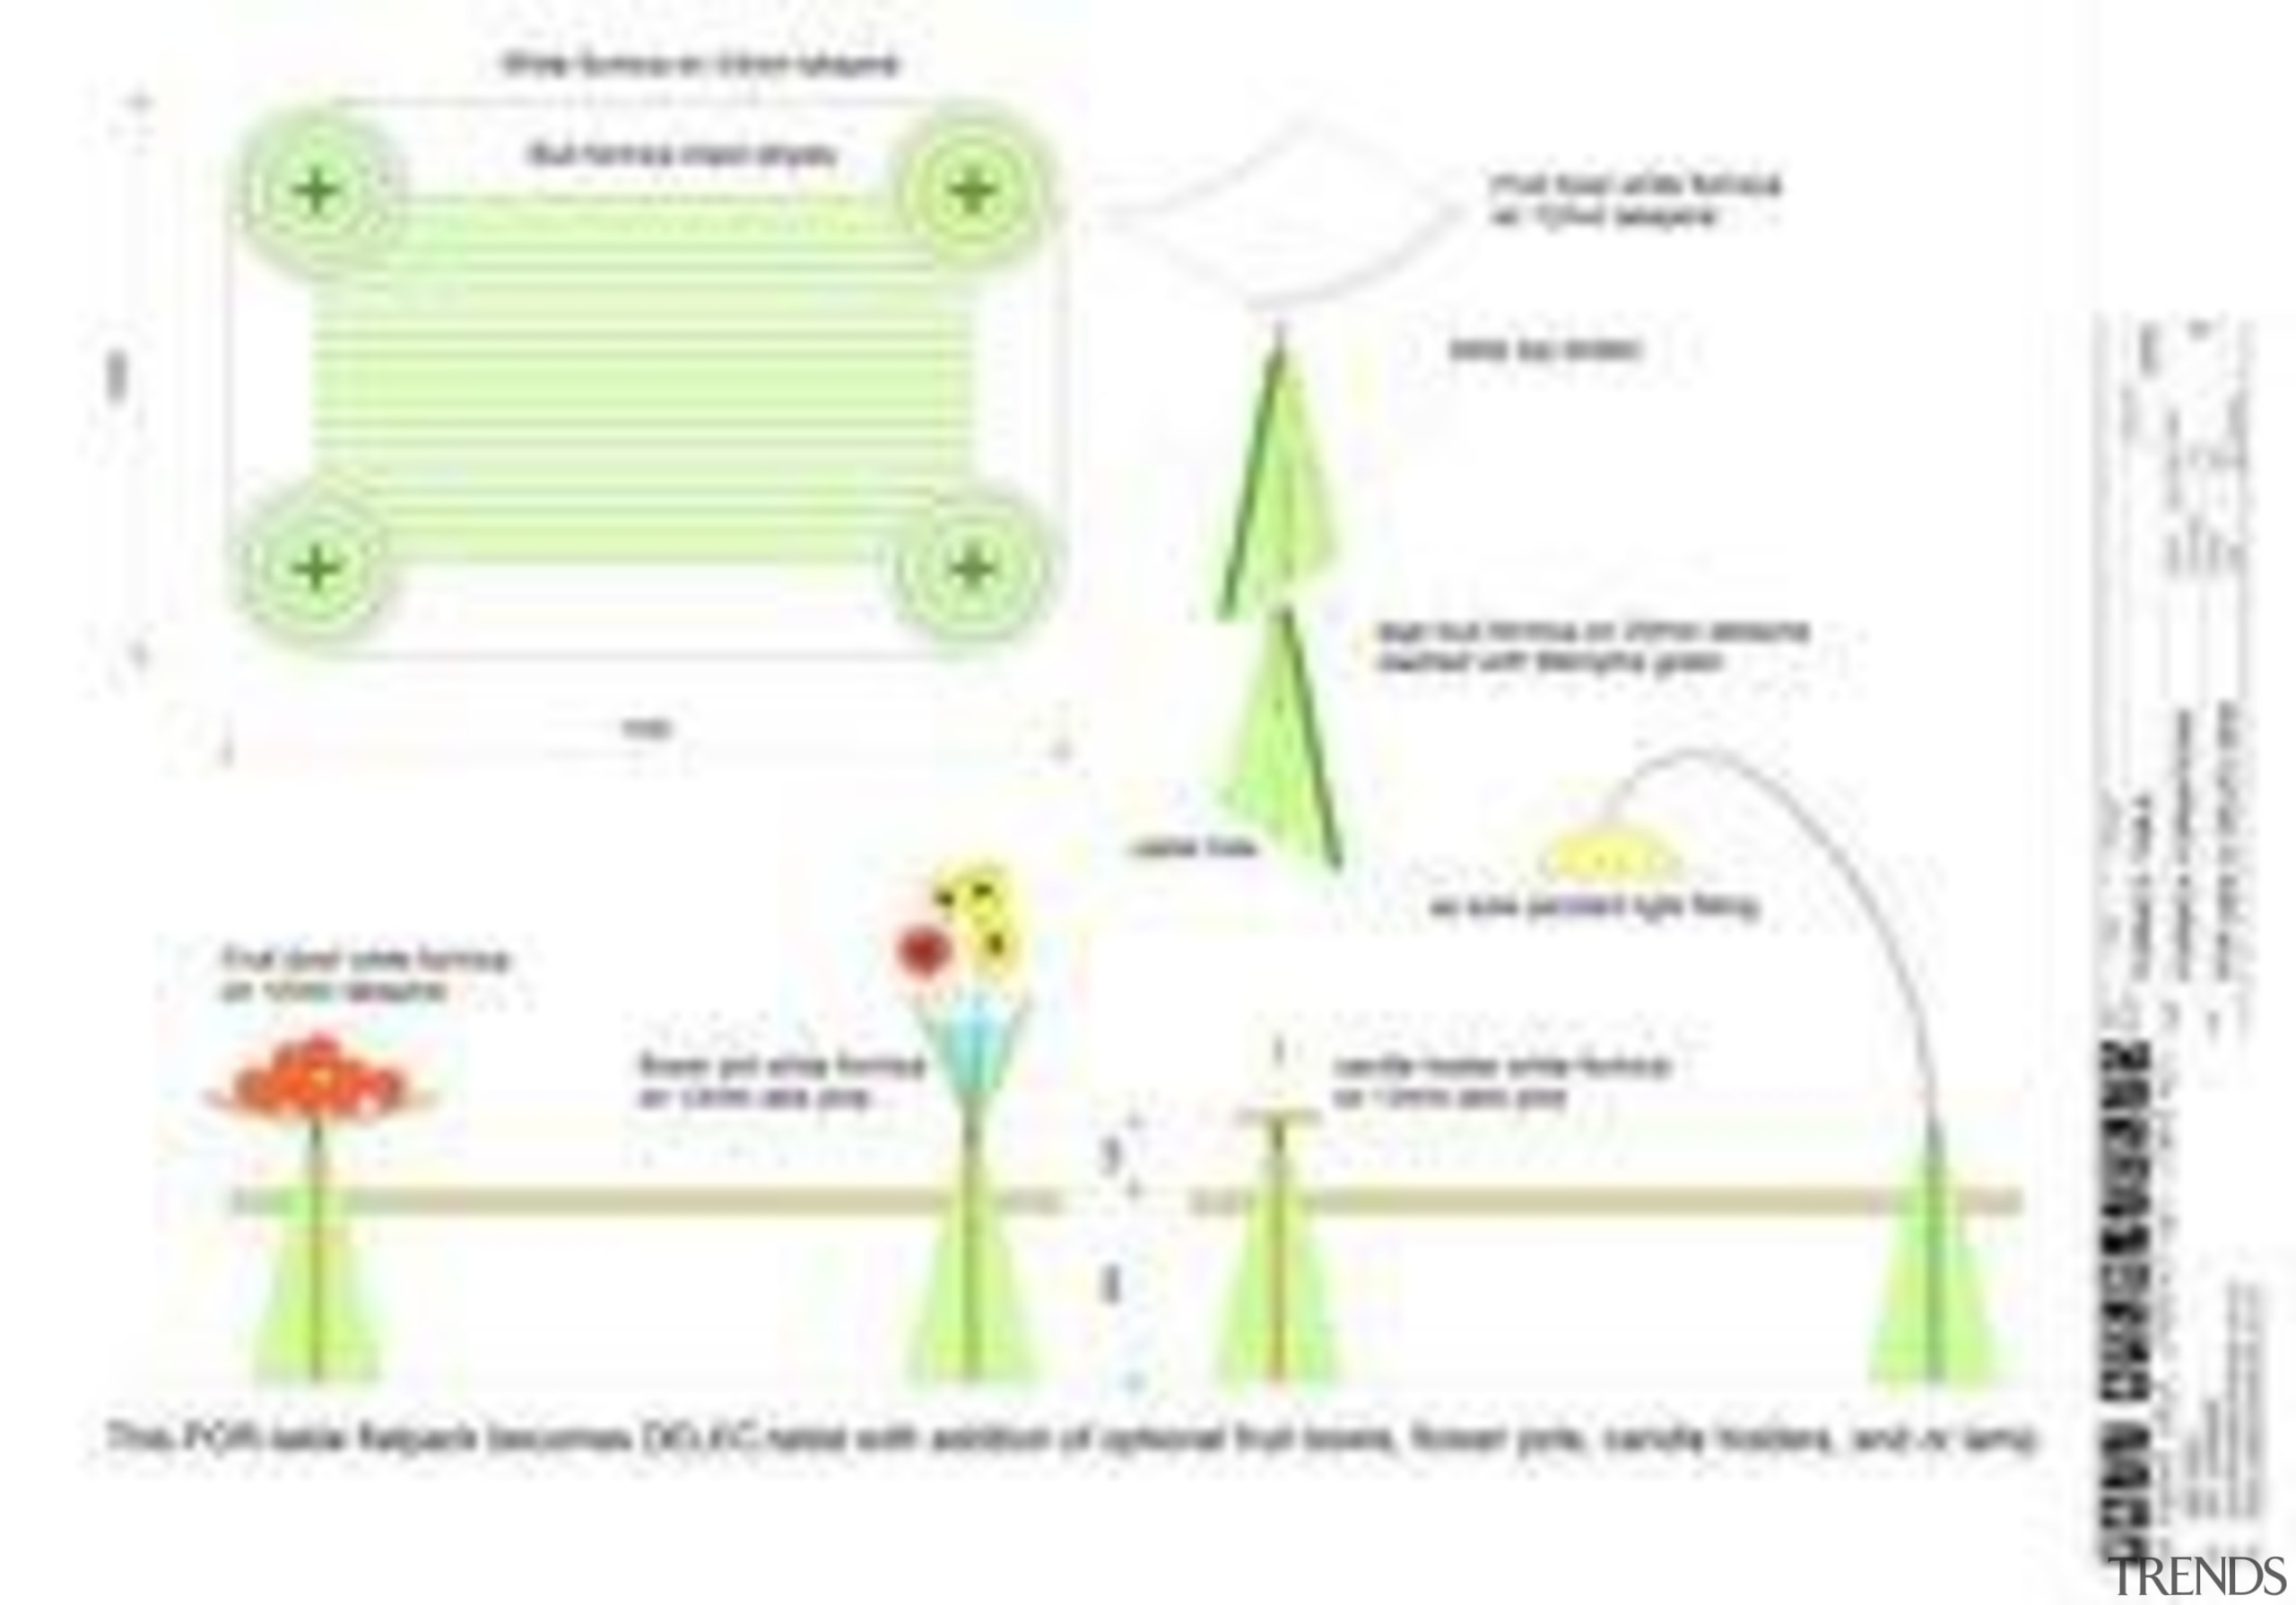 6731ab904620cfc7e1dce5d50d0e2365.jpg - 6731ab904620cfc7e1dce5d50d0e2365.jpg - area | diagram | area, diagram, font, green, line, material, plant, product, text, white